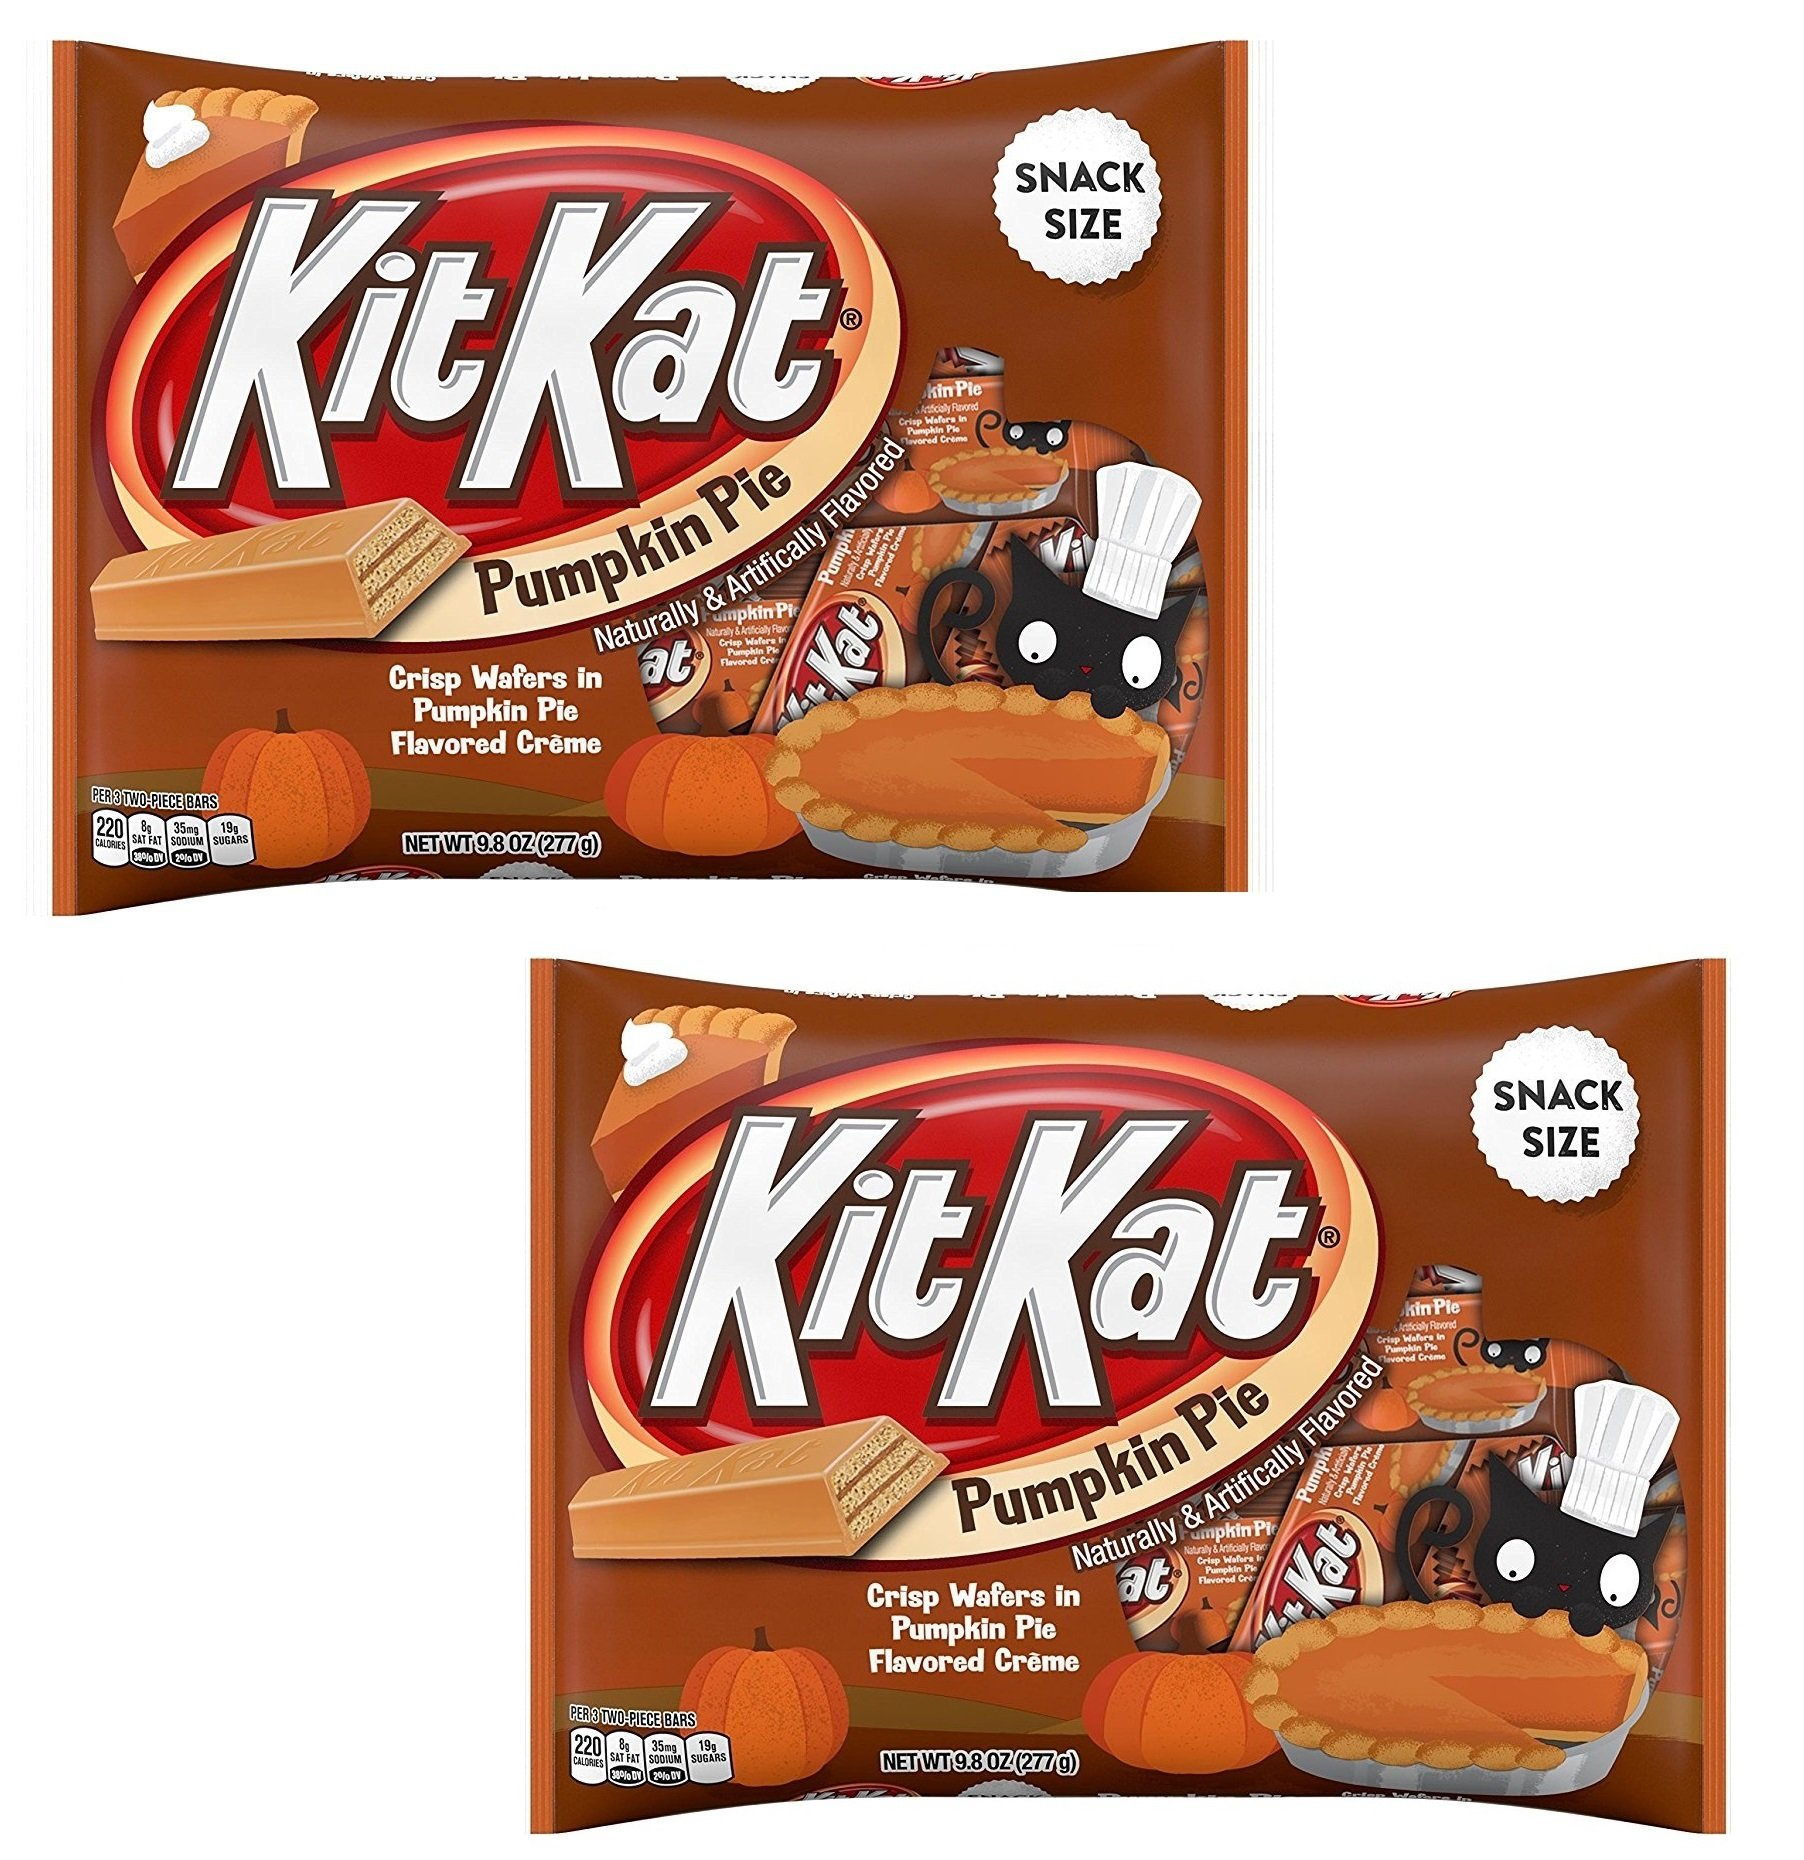 KitKat Pumpkin Pie Snack Size Crisp Wafers 9.8oz (Pack of 2) by Kit Kat